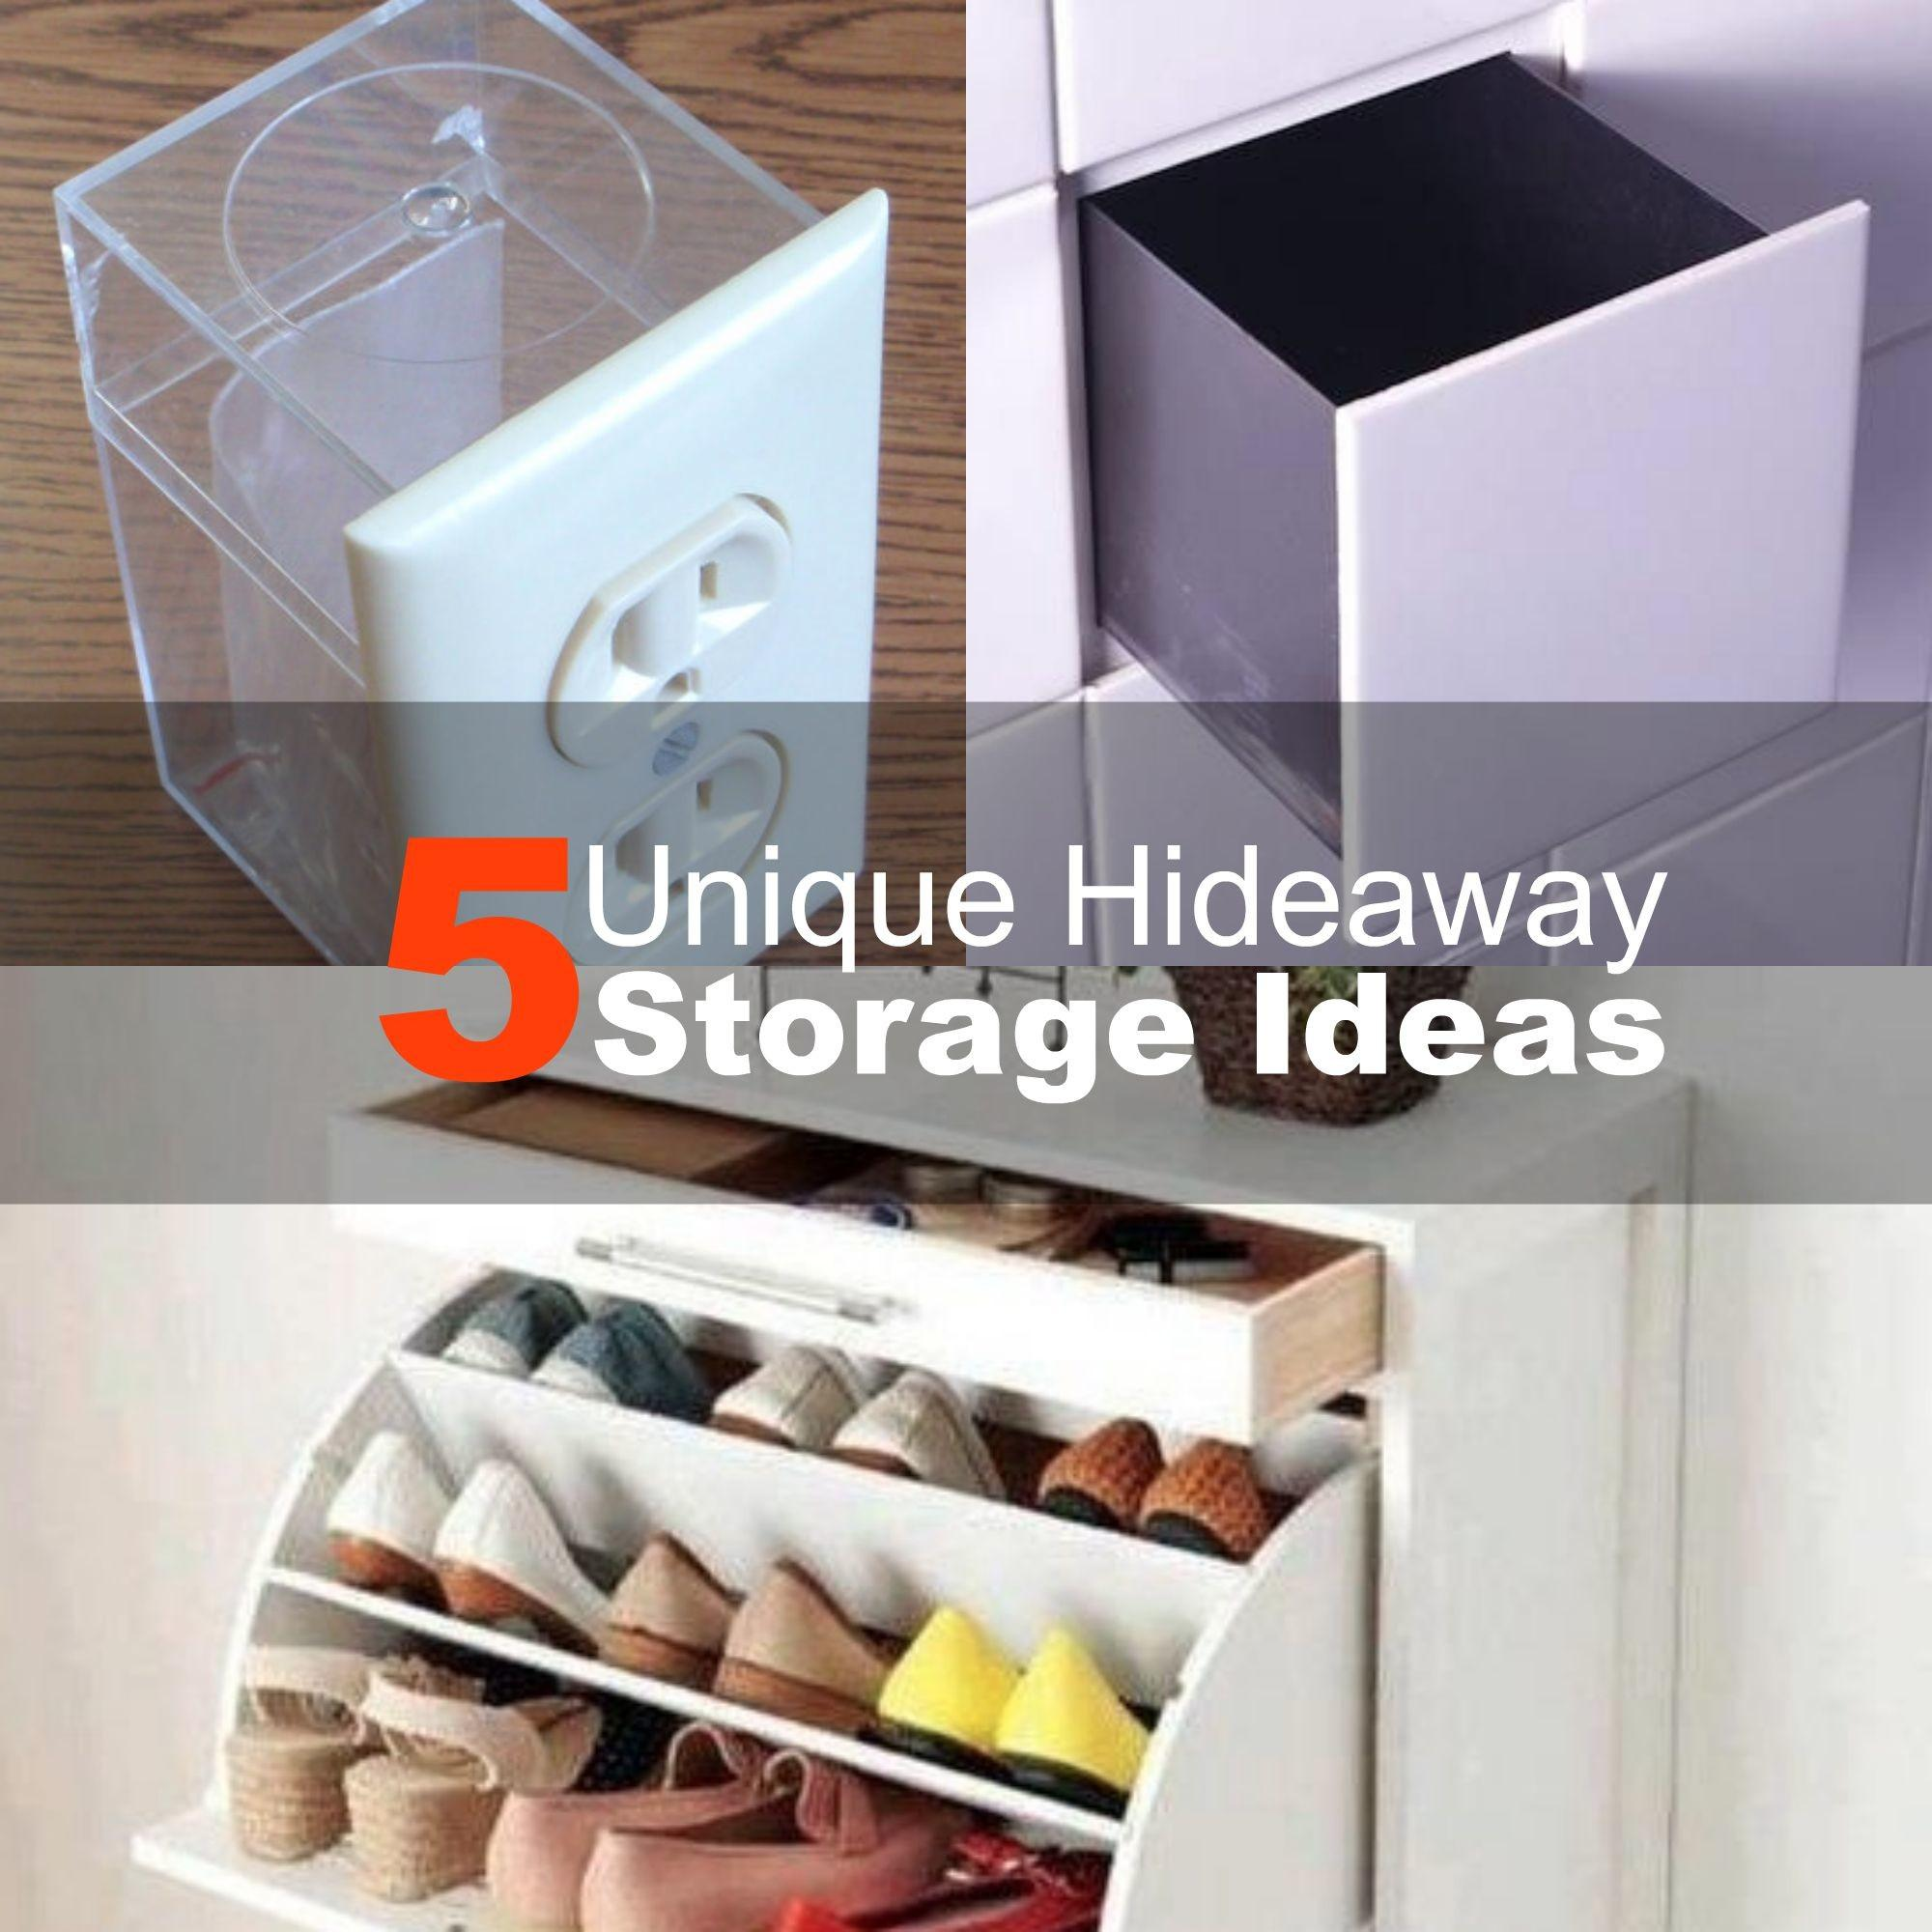 Unique Hideaway Storage Ideas 2015